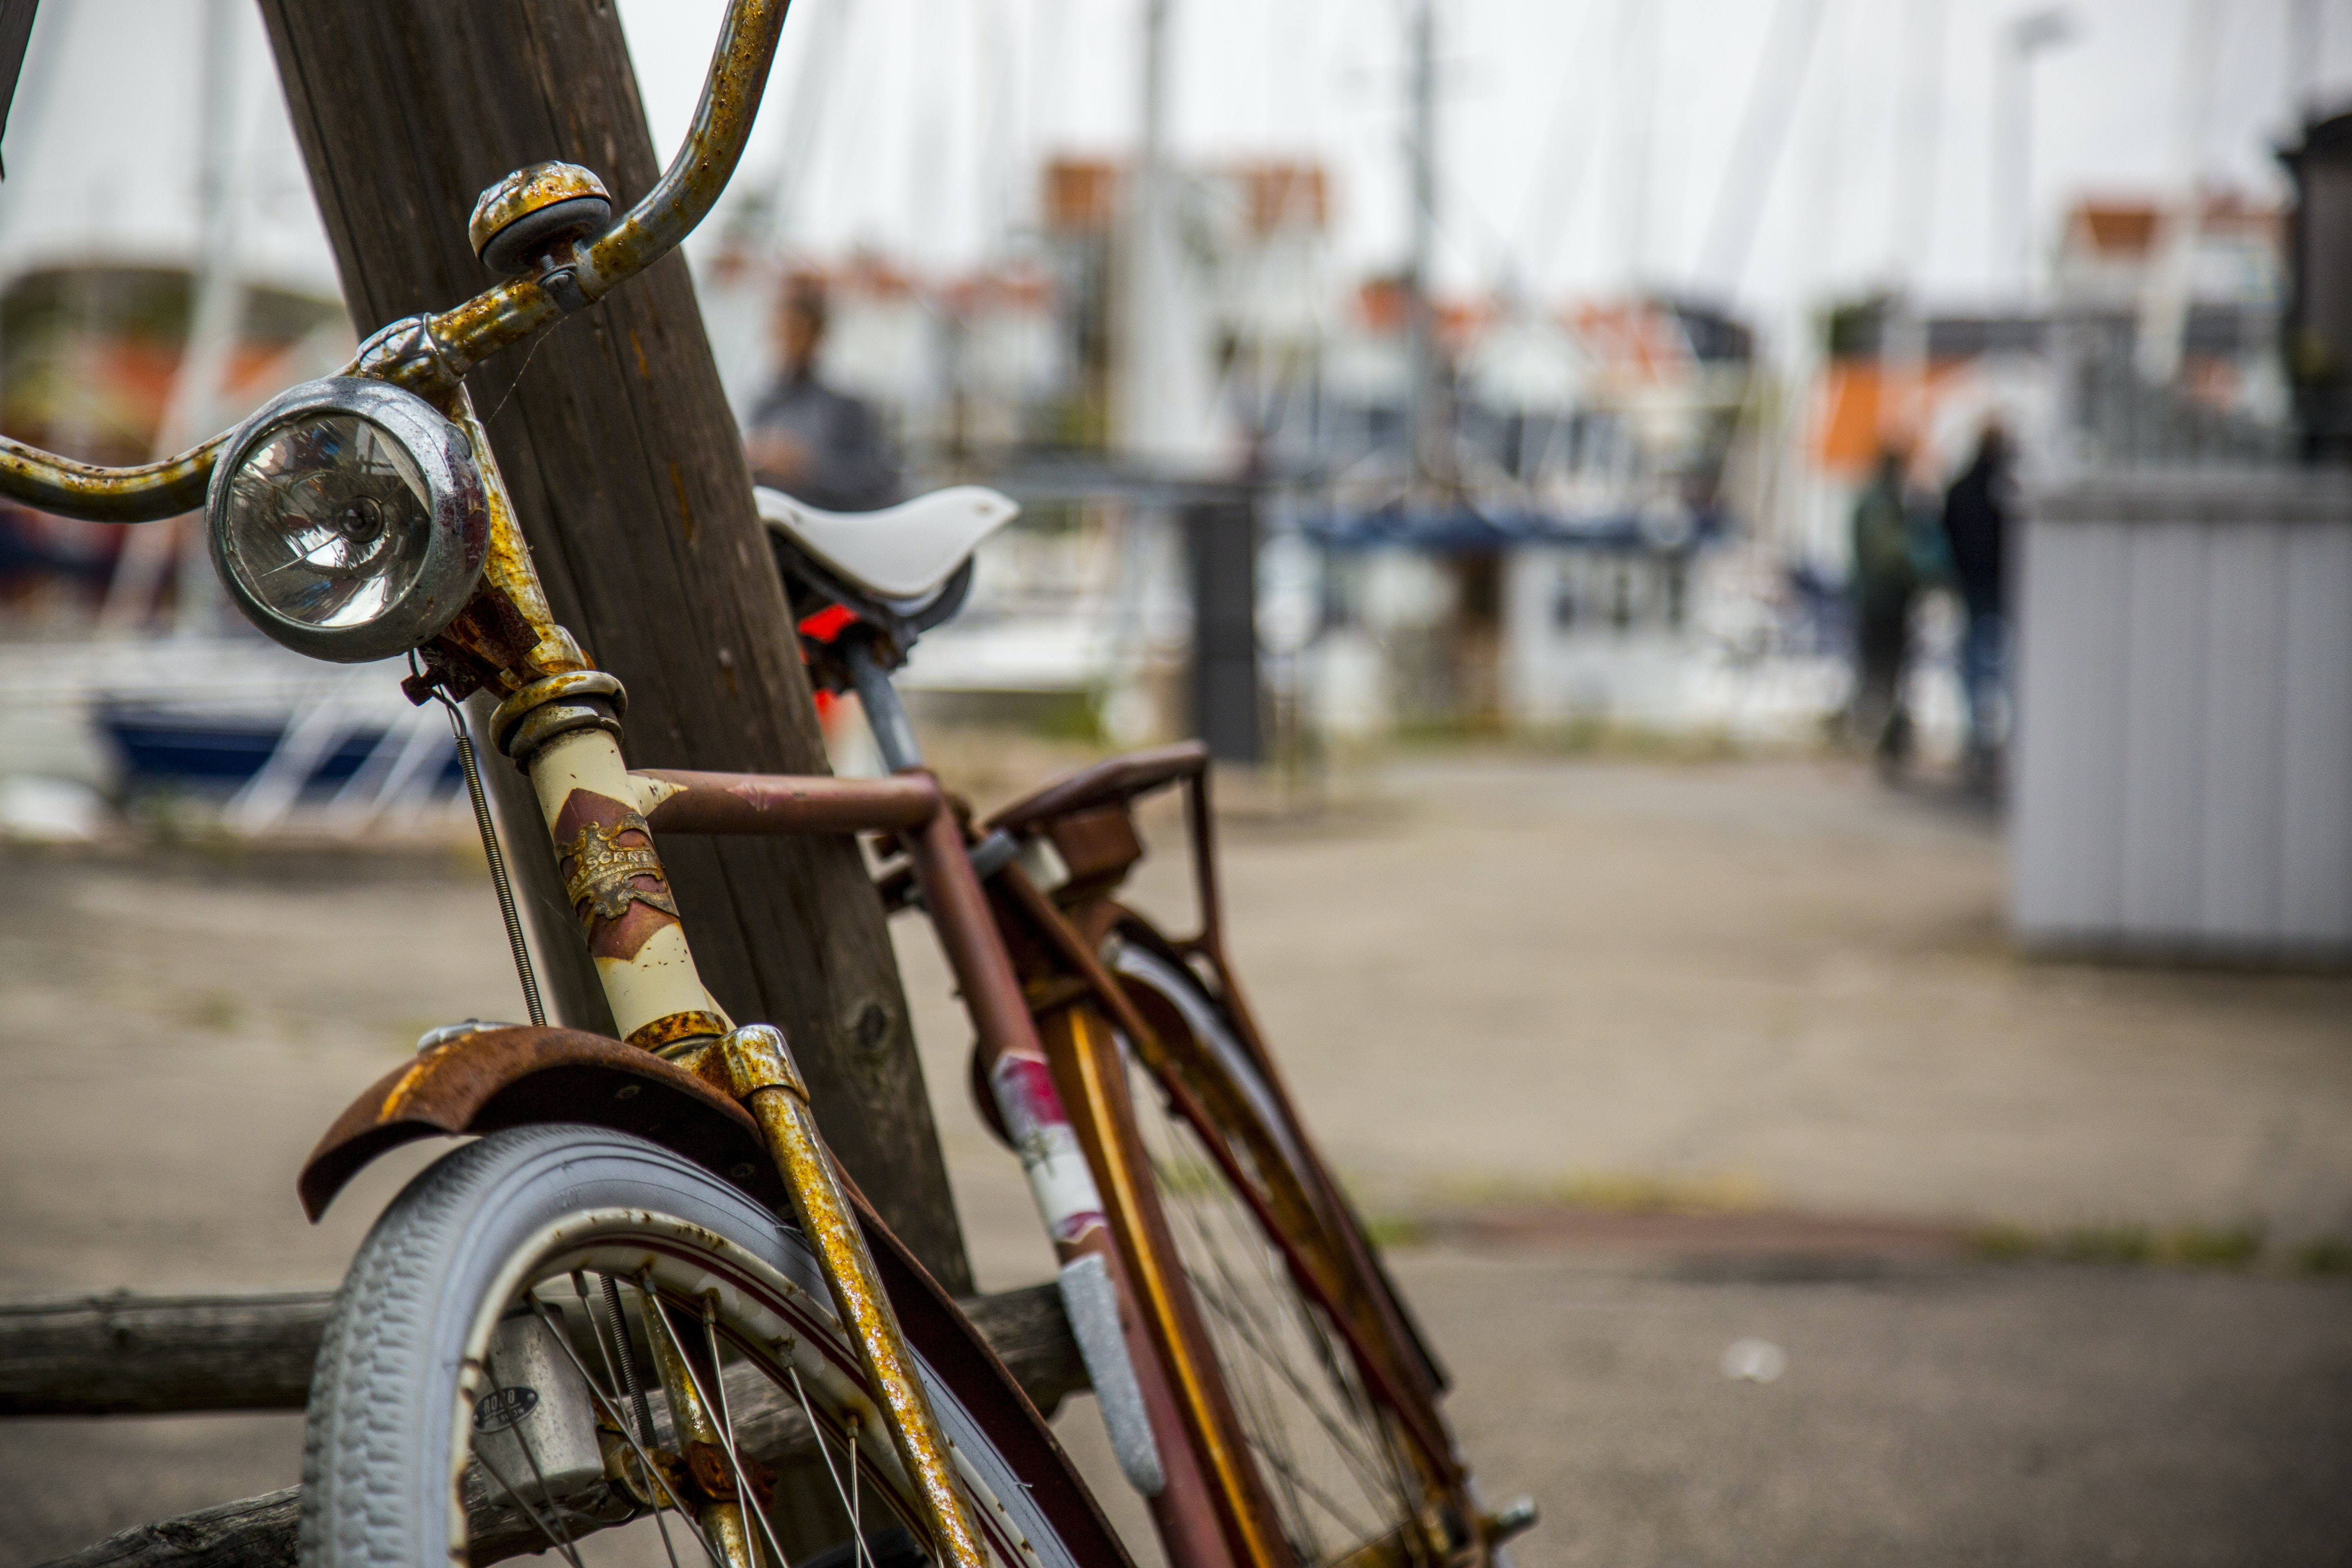 shallow focus photography of city bike leaning on brown wooden post